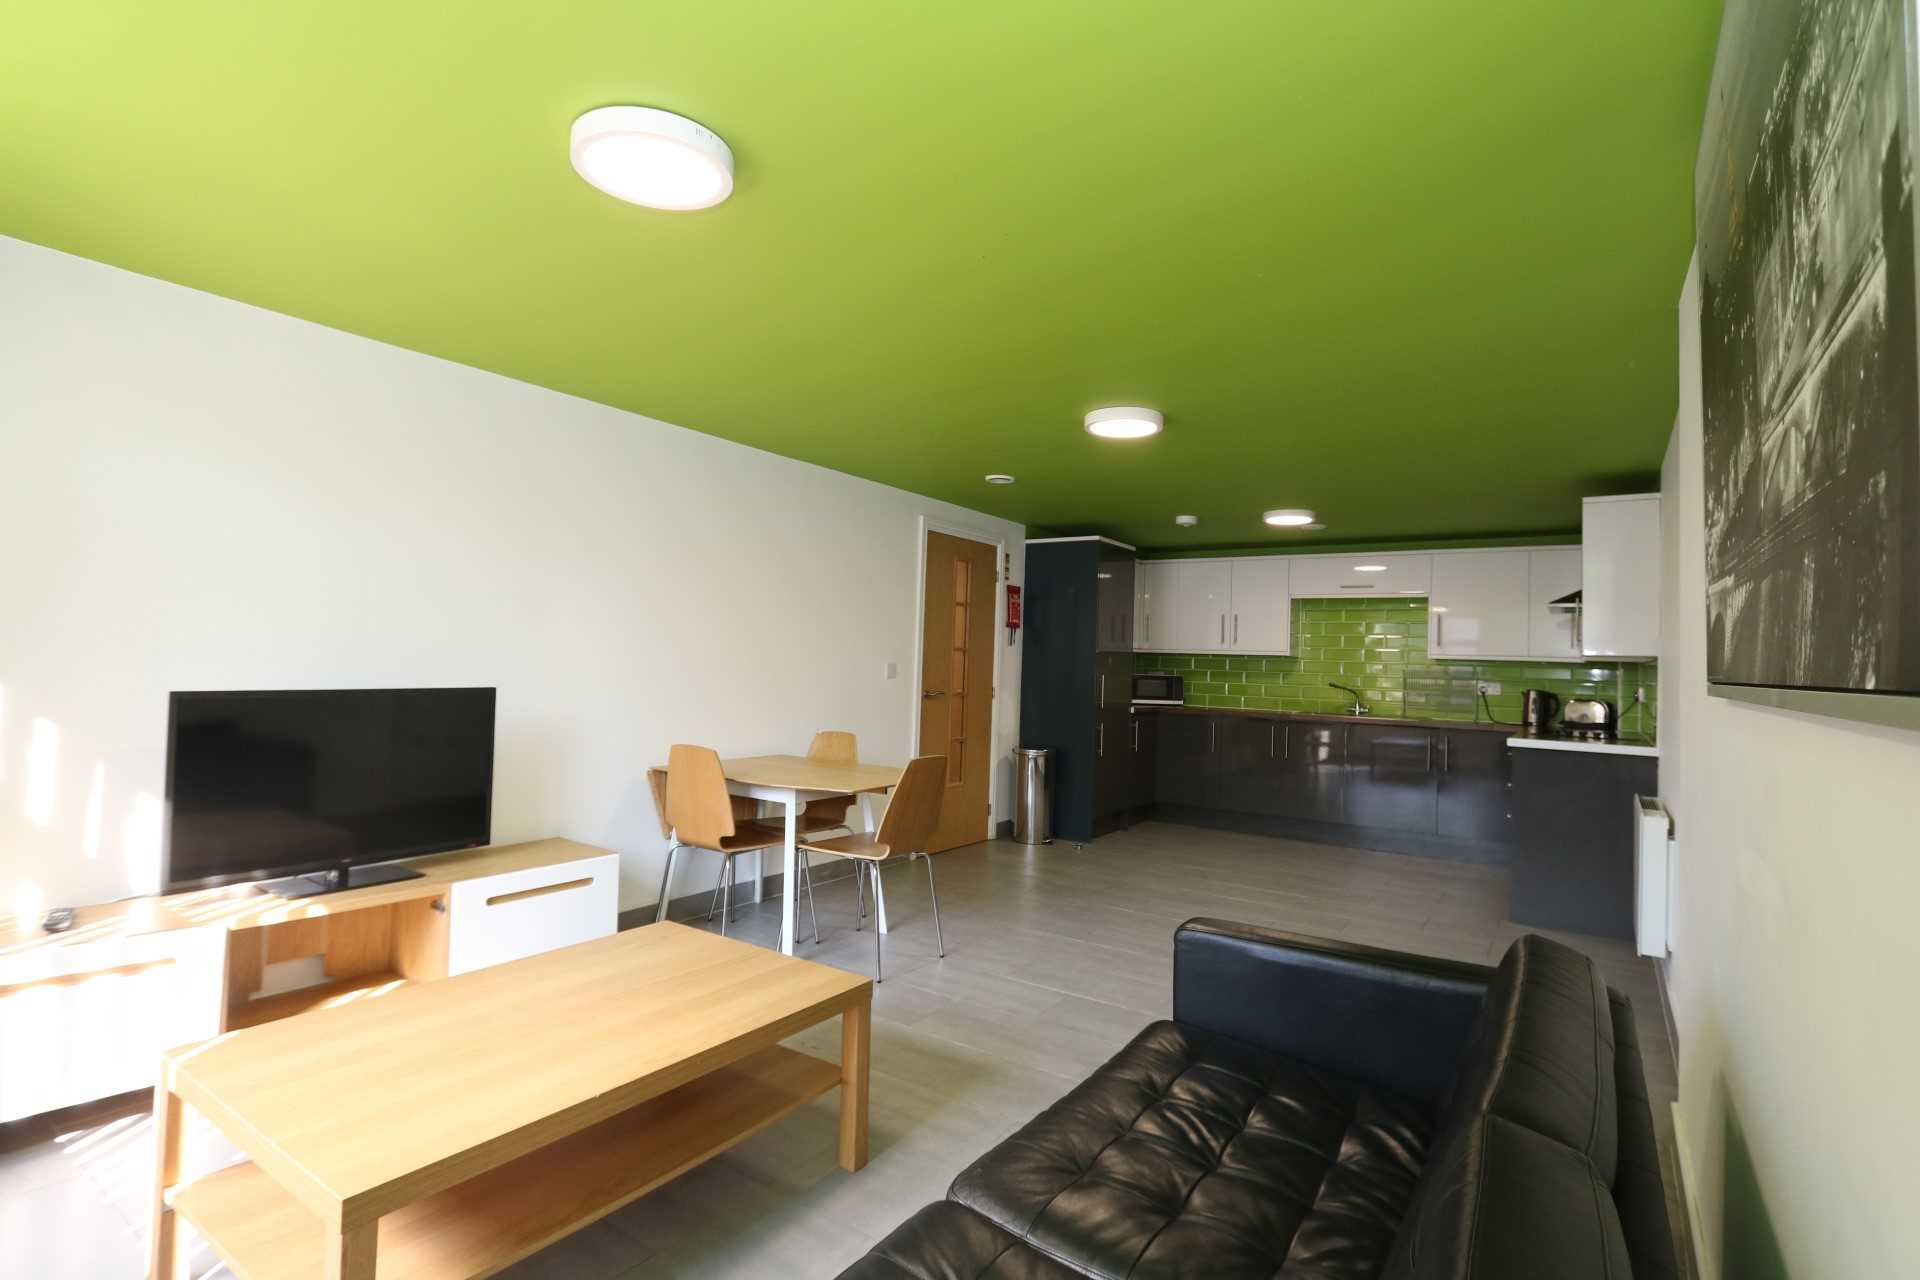 Room 1C Kings Court new development fully furnished student accommodation with en suite, all bills included - NO FEES, Image 7